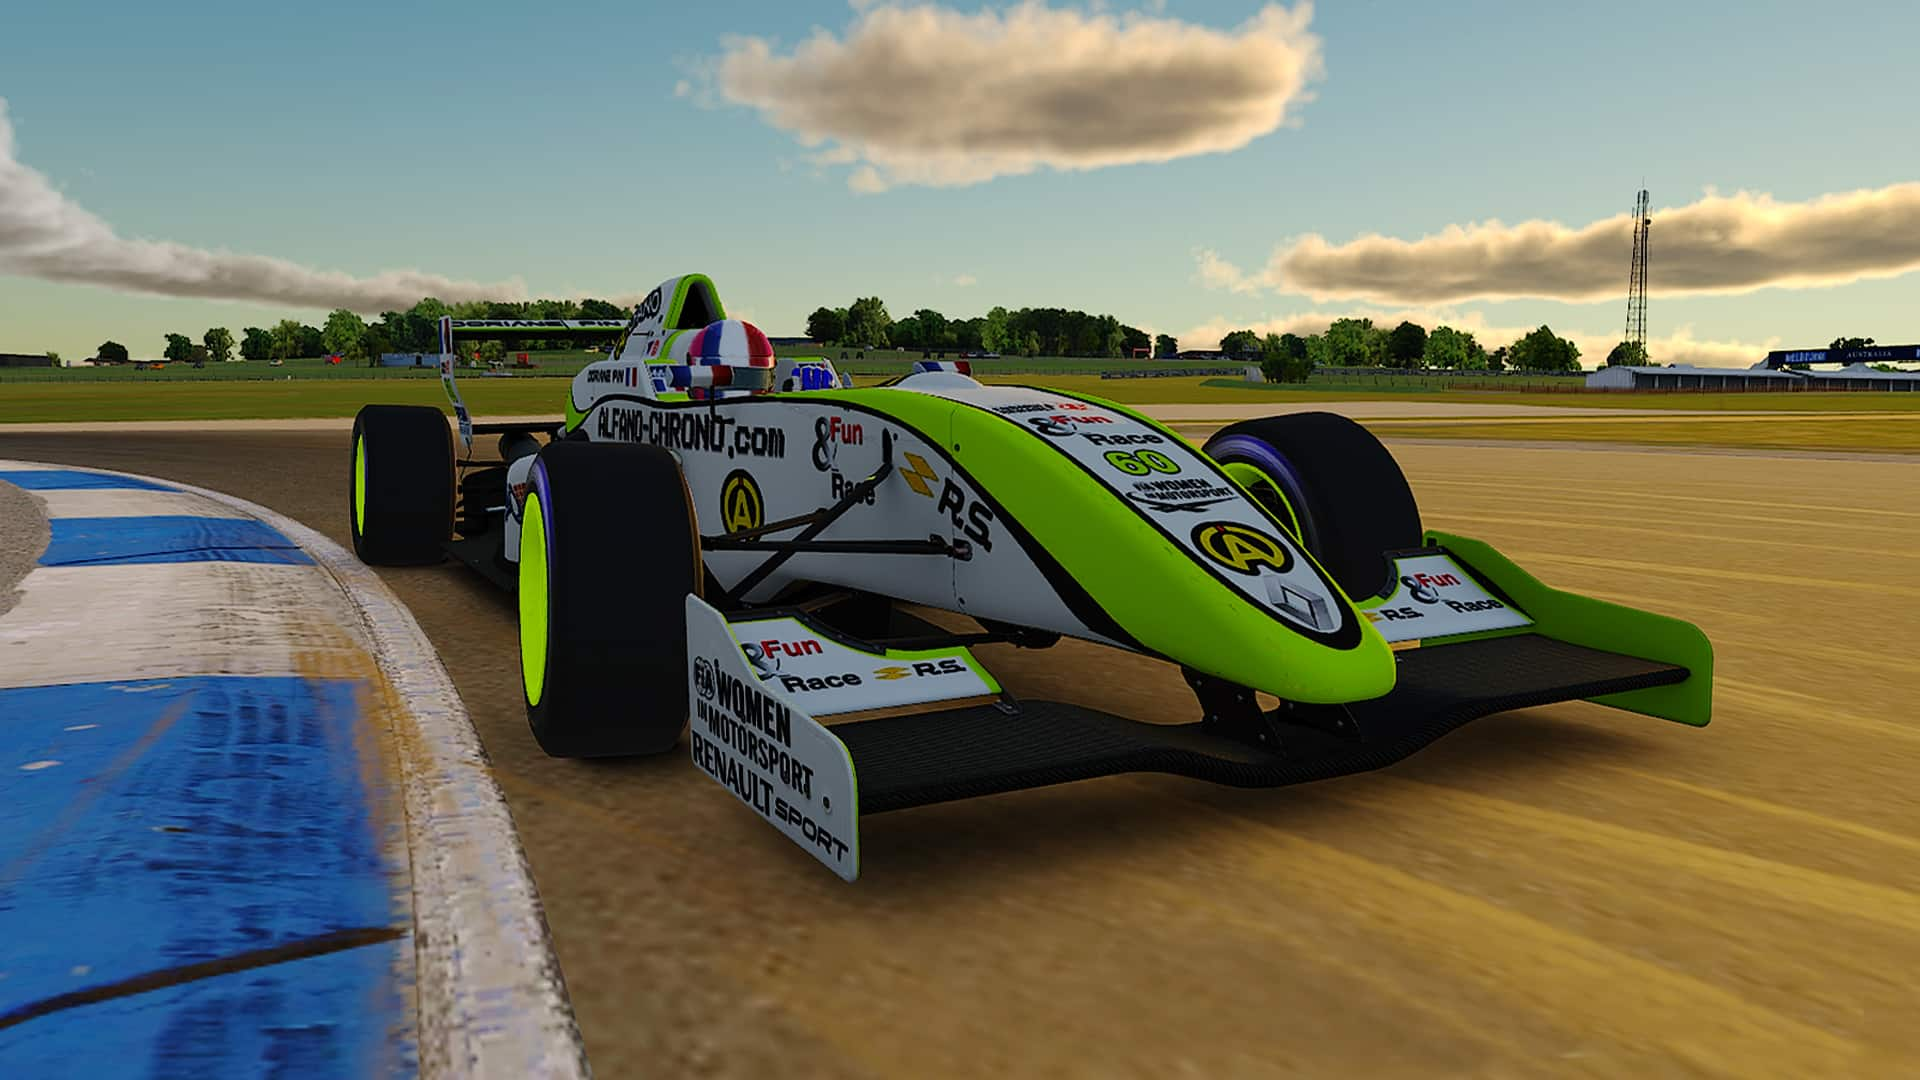 Doriane Pin drives her Formule Renault 2.0 on iRacing,